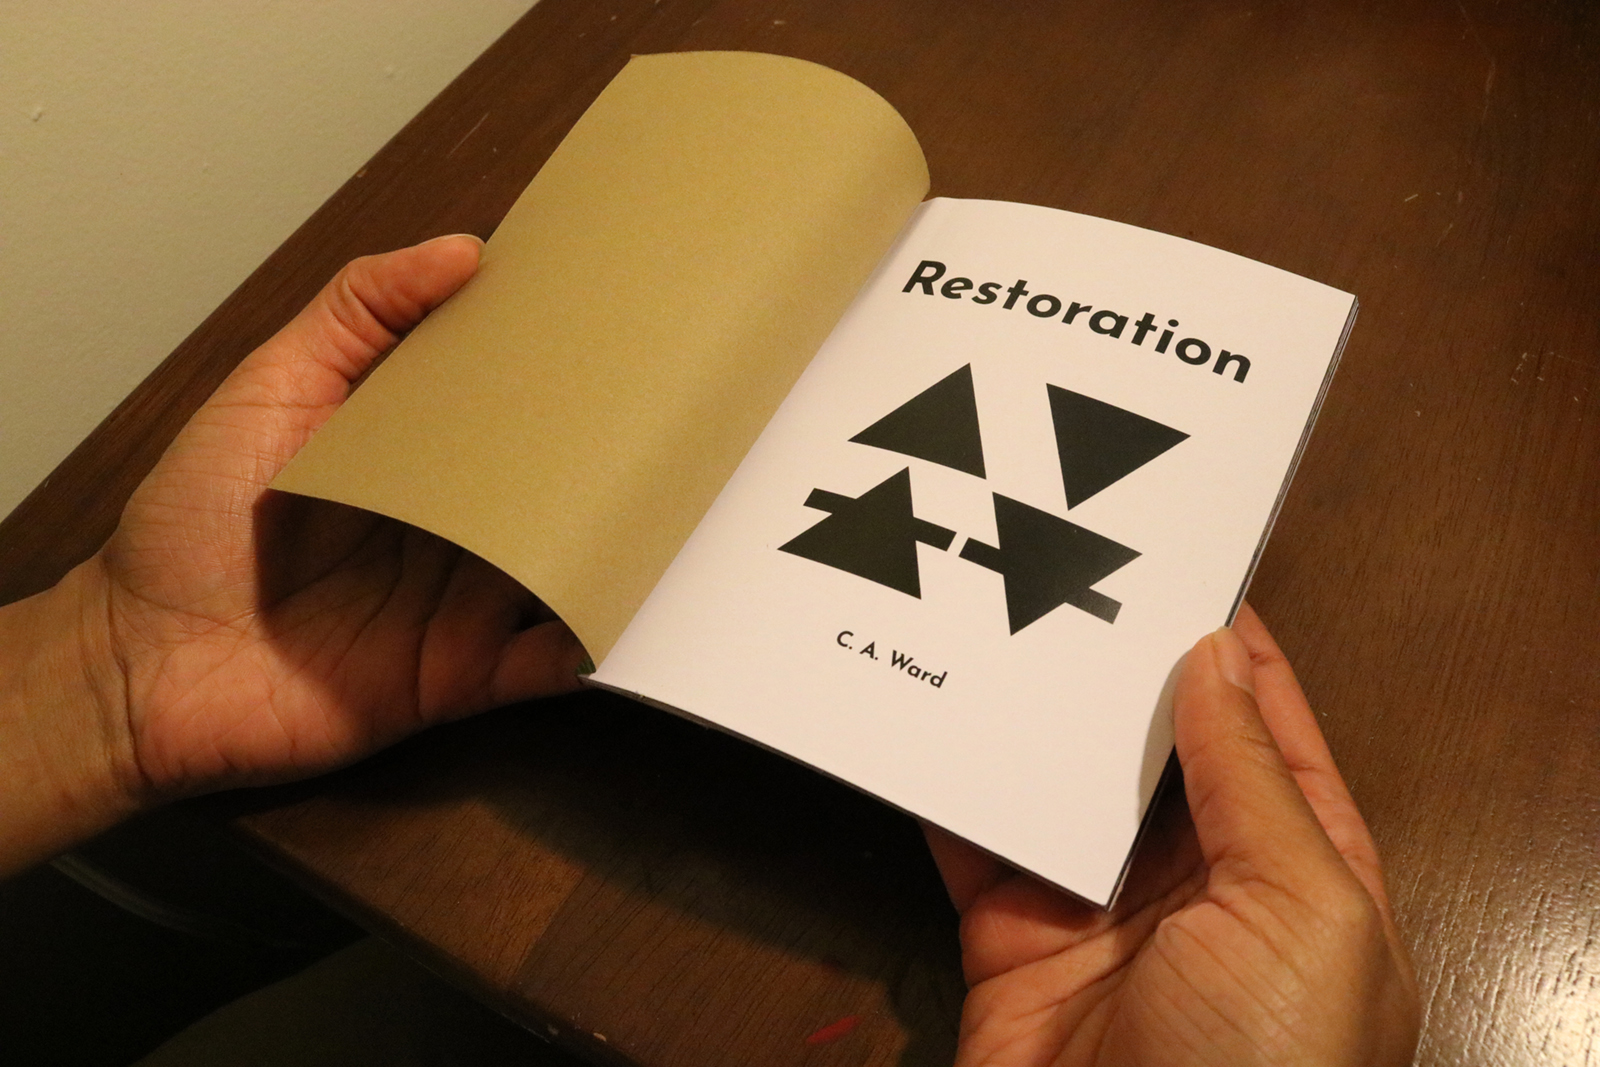 Title page of Restoration. The images are of the elemental symbols.